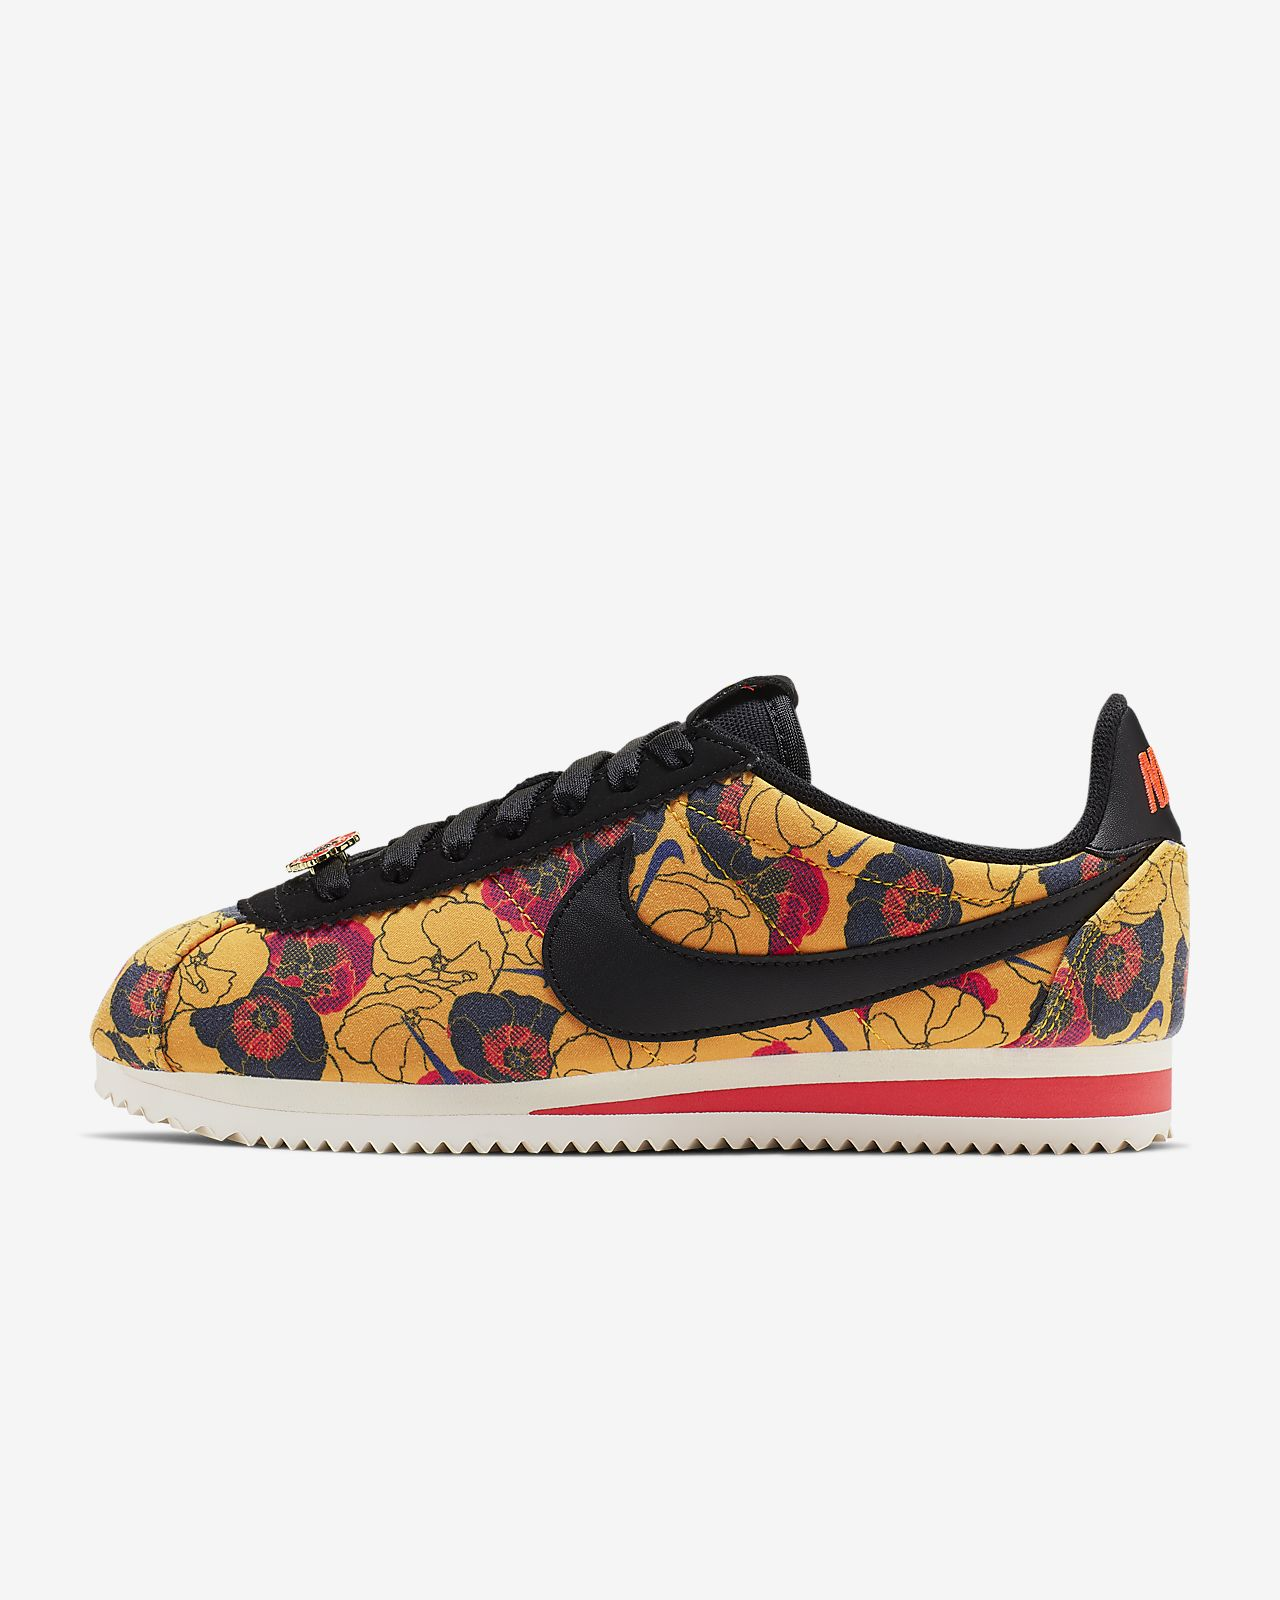 best loved d1251 f19f9 Nike Classic Cortez LX Floral. CAD 105. Low Resolution ...